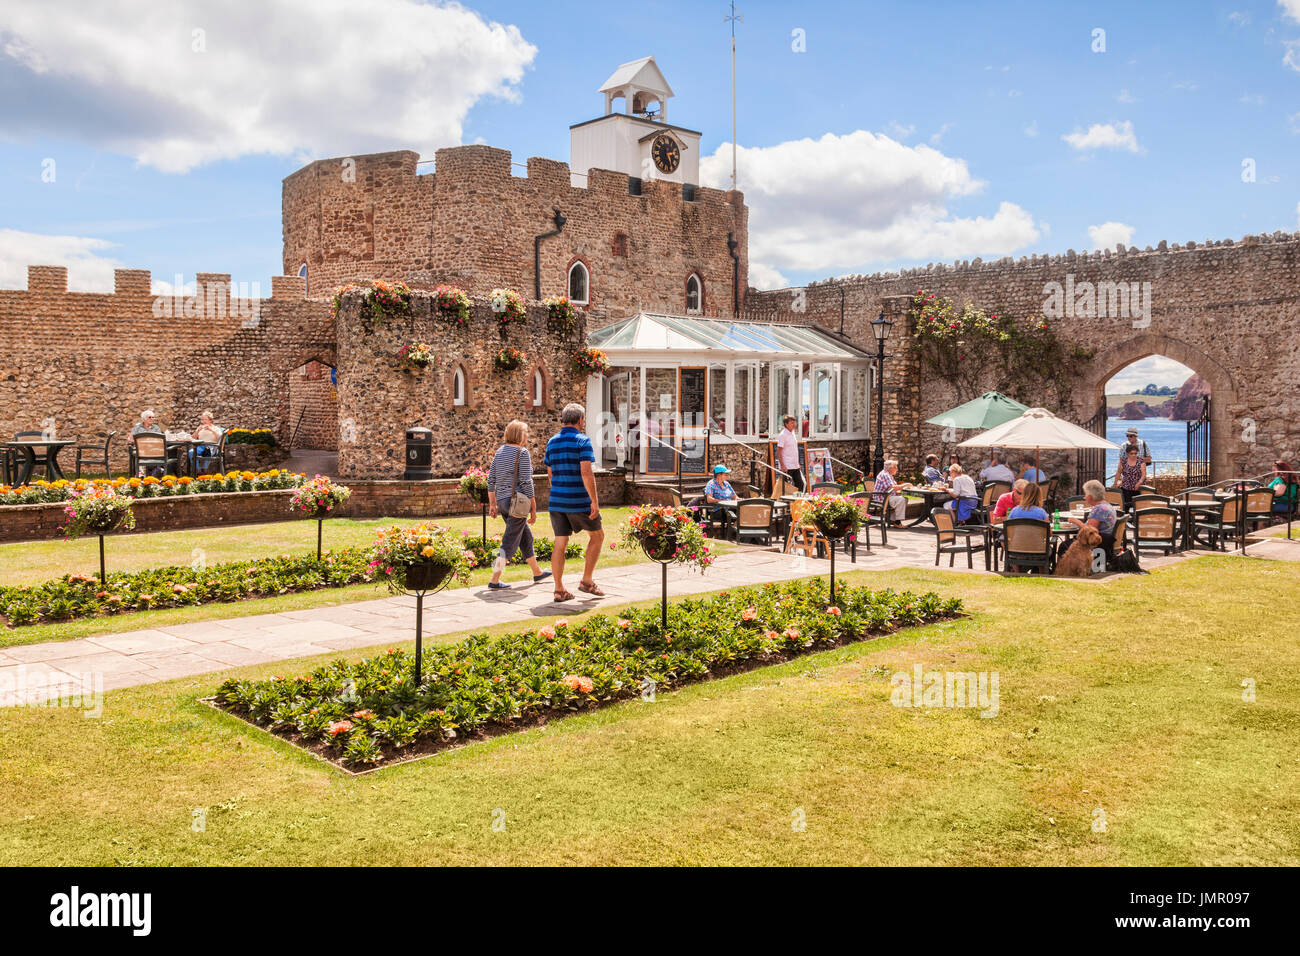 3 July 2017: Sidmouth, Dorset, England, UK - Cafe in Connaught Gardens on a sunny summer day. - Stock Image